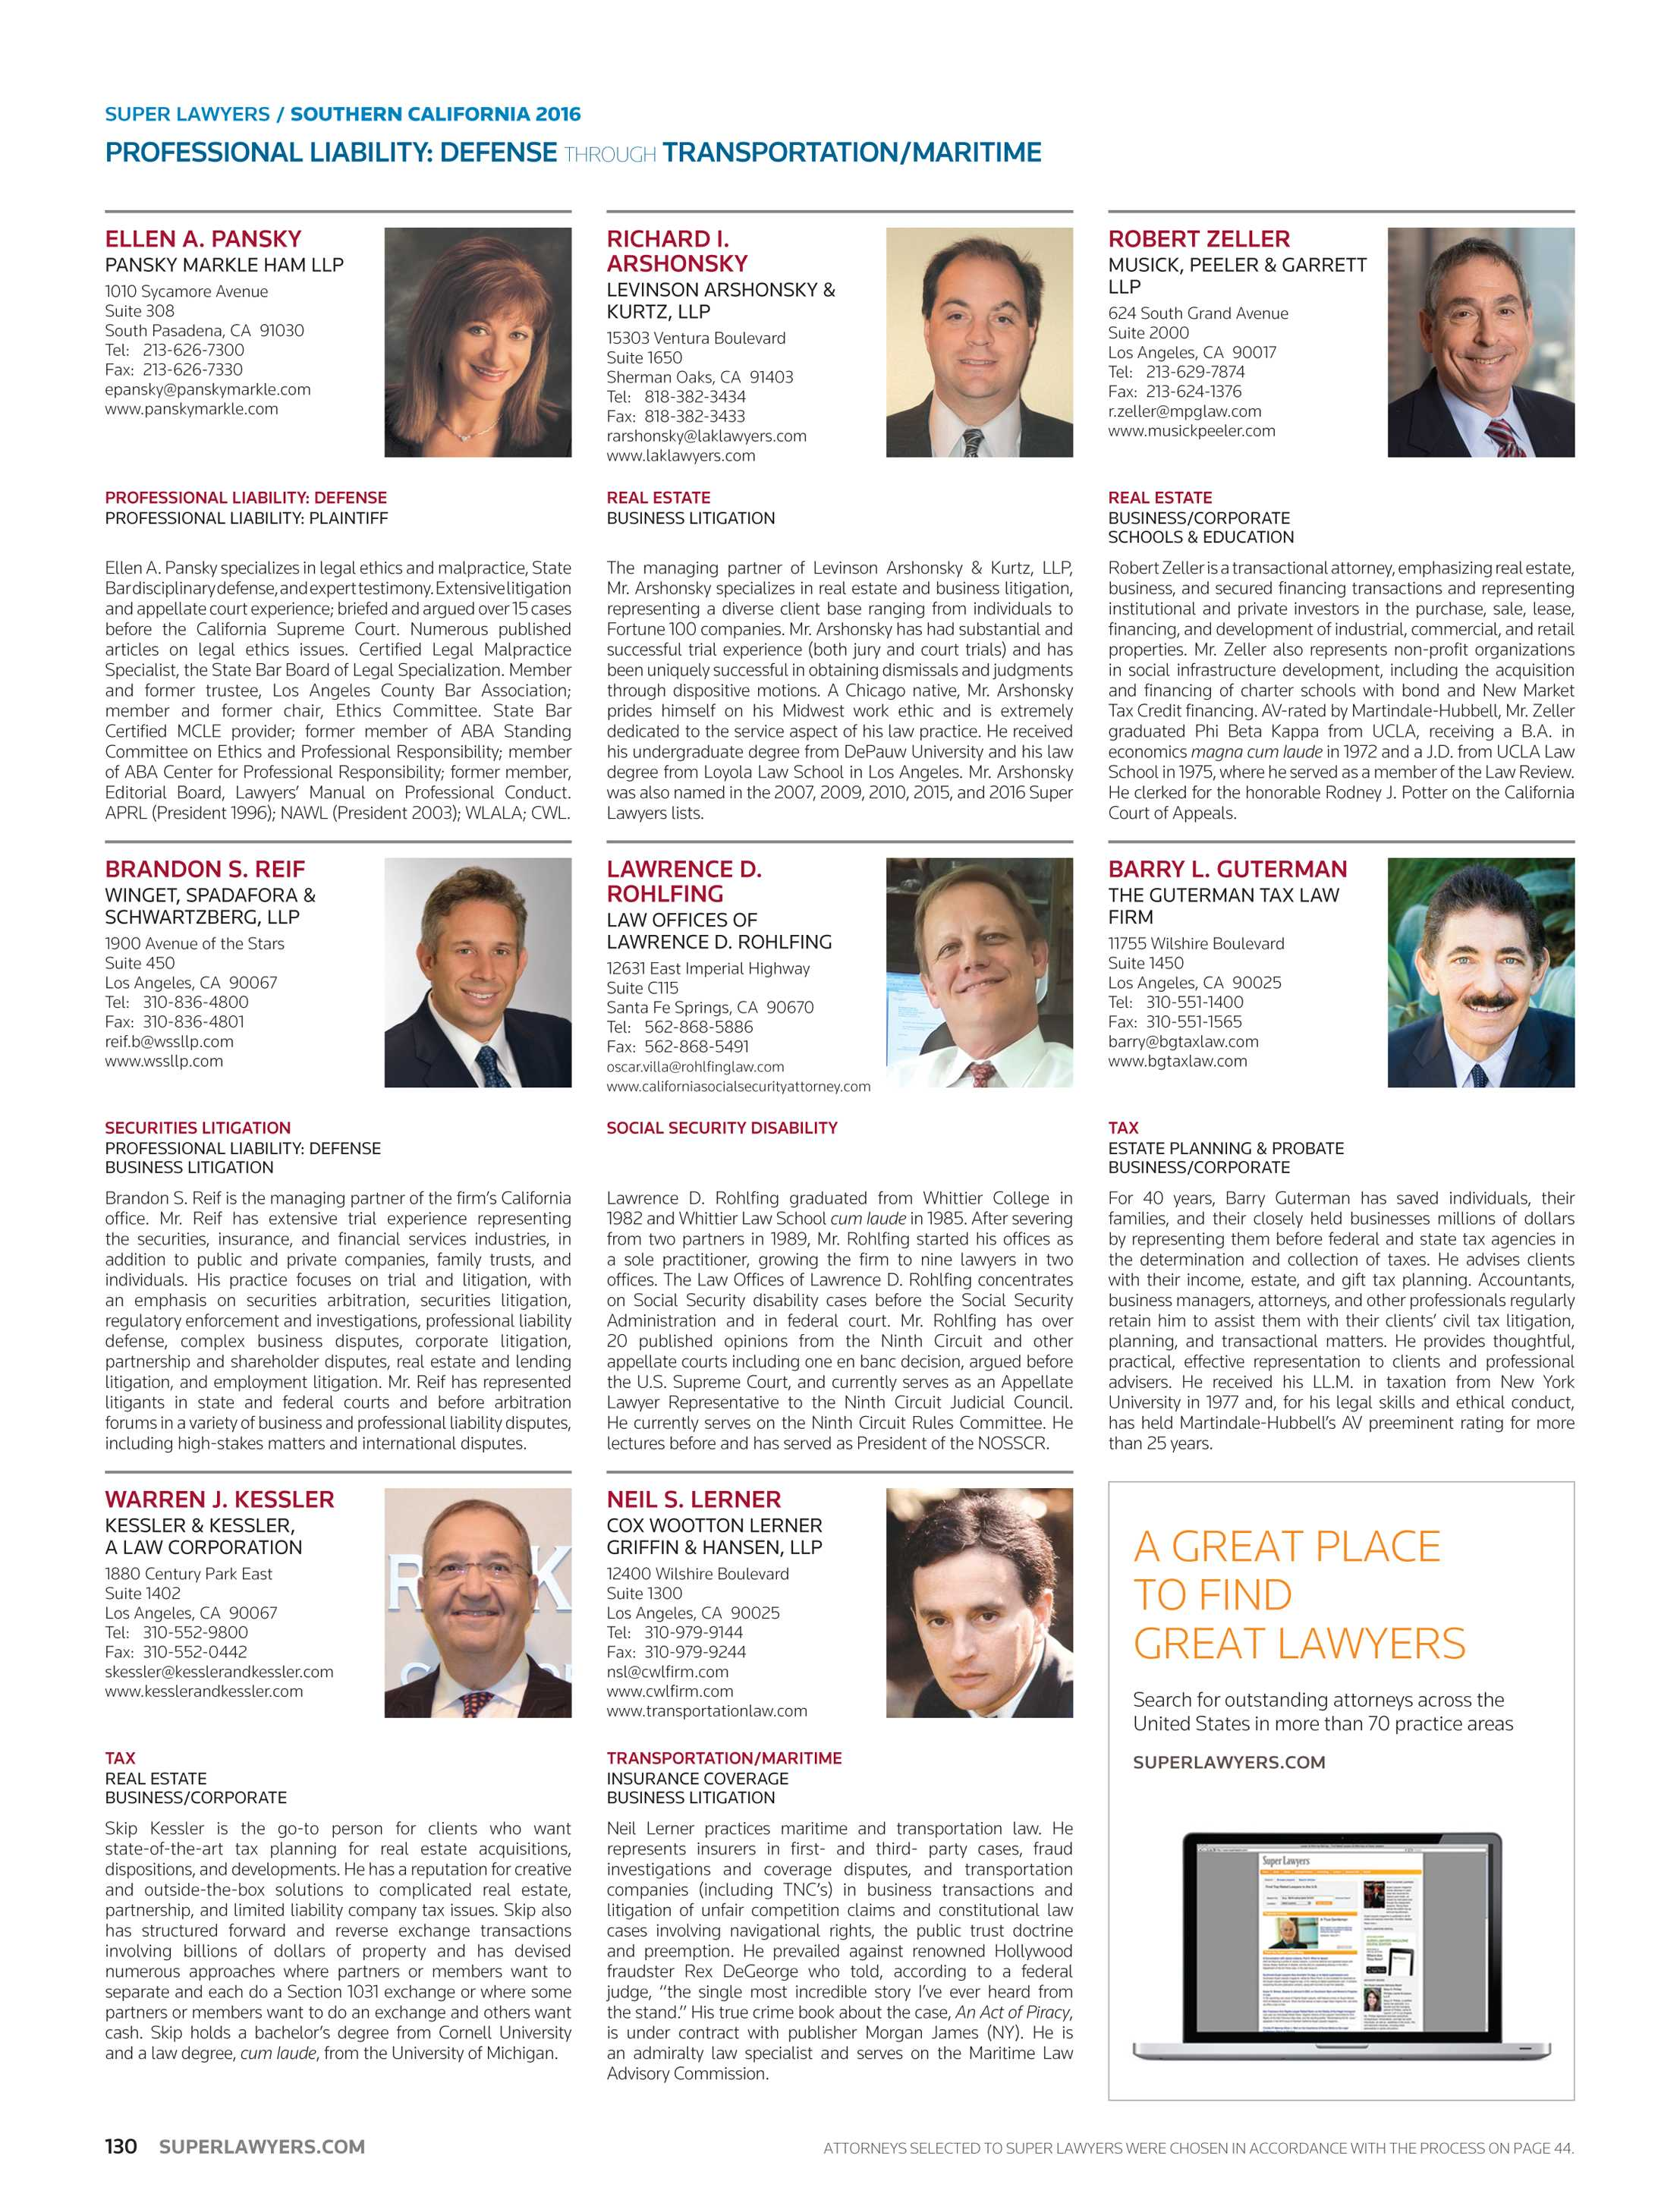 Super Lawyers Southern California 2016 Page 130